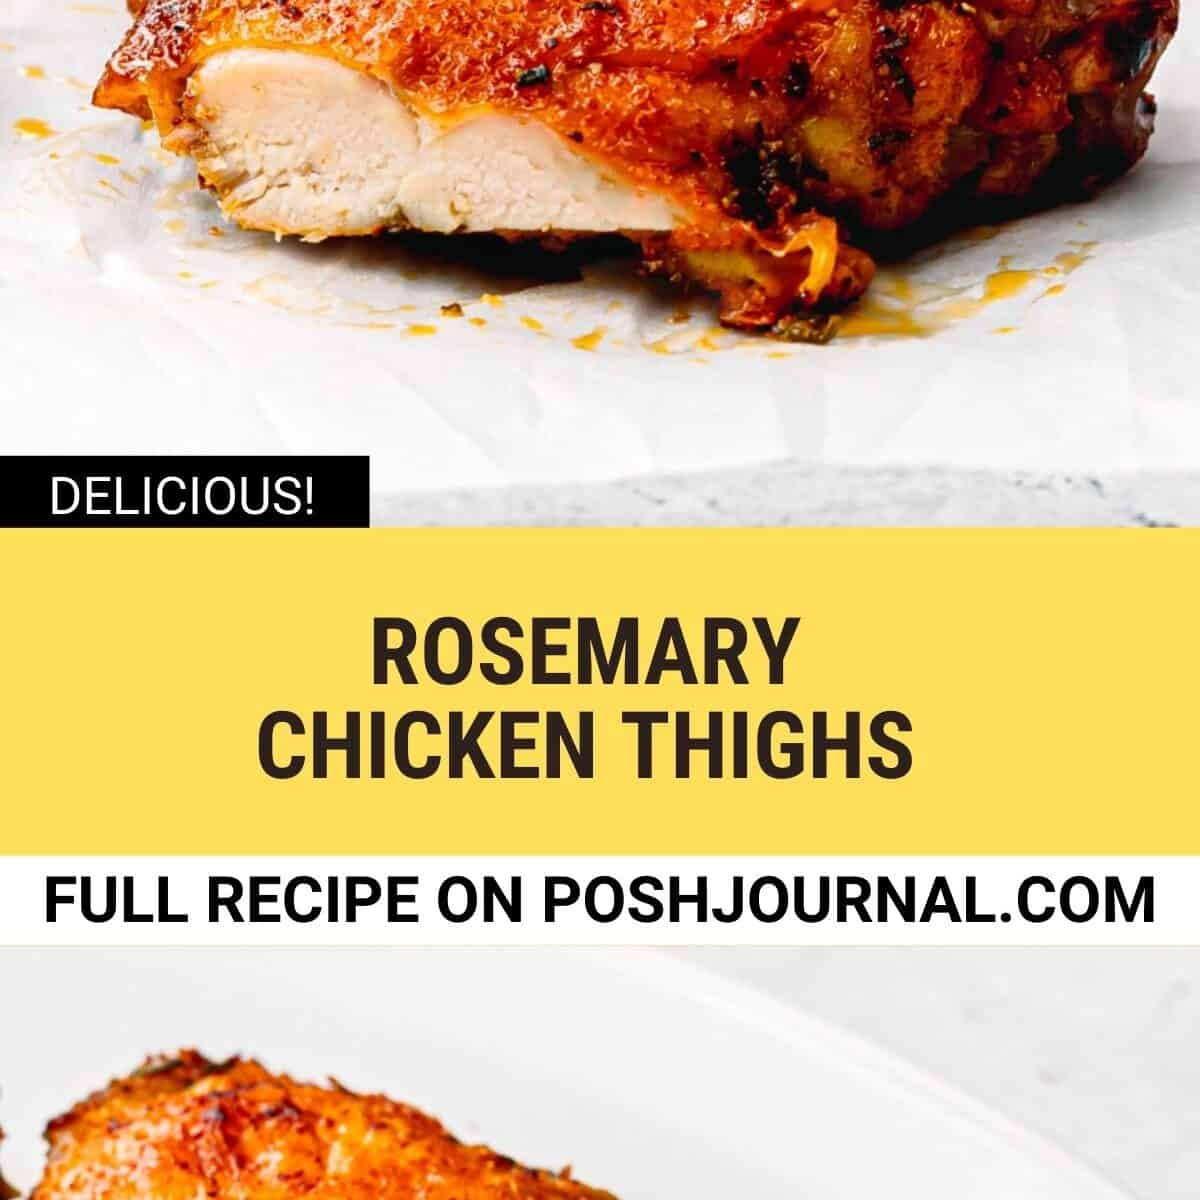 Oven Baked Rosemary Chicken Thighs